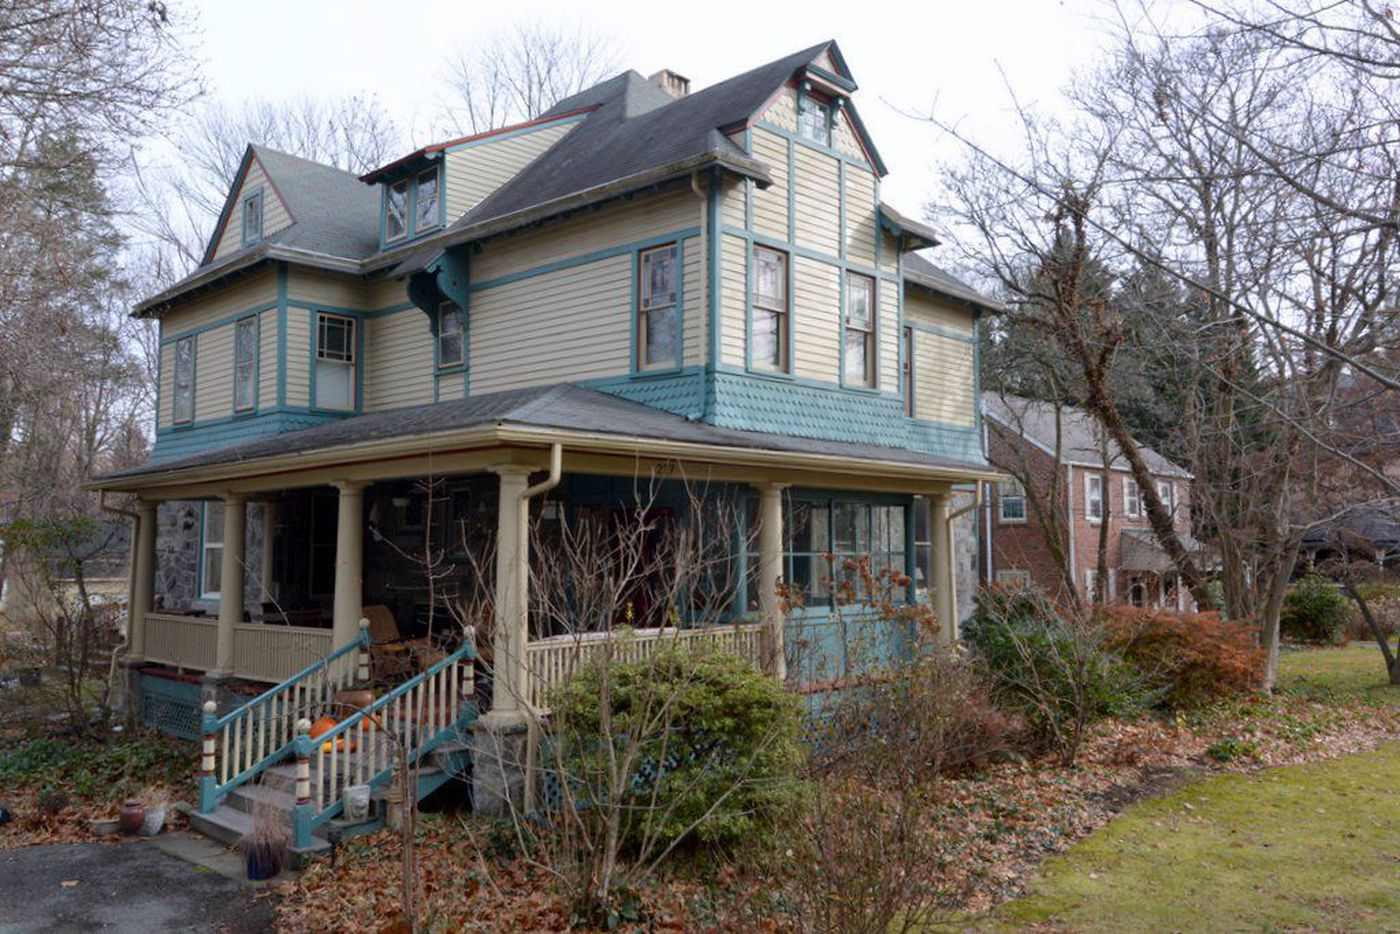 She Liked the 'Swarthmore' Part of the Queen Anne Home; The Victorian Part, Not So Much